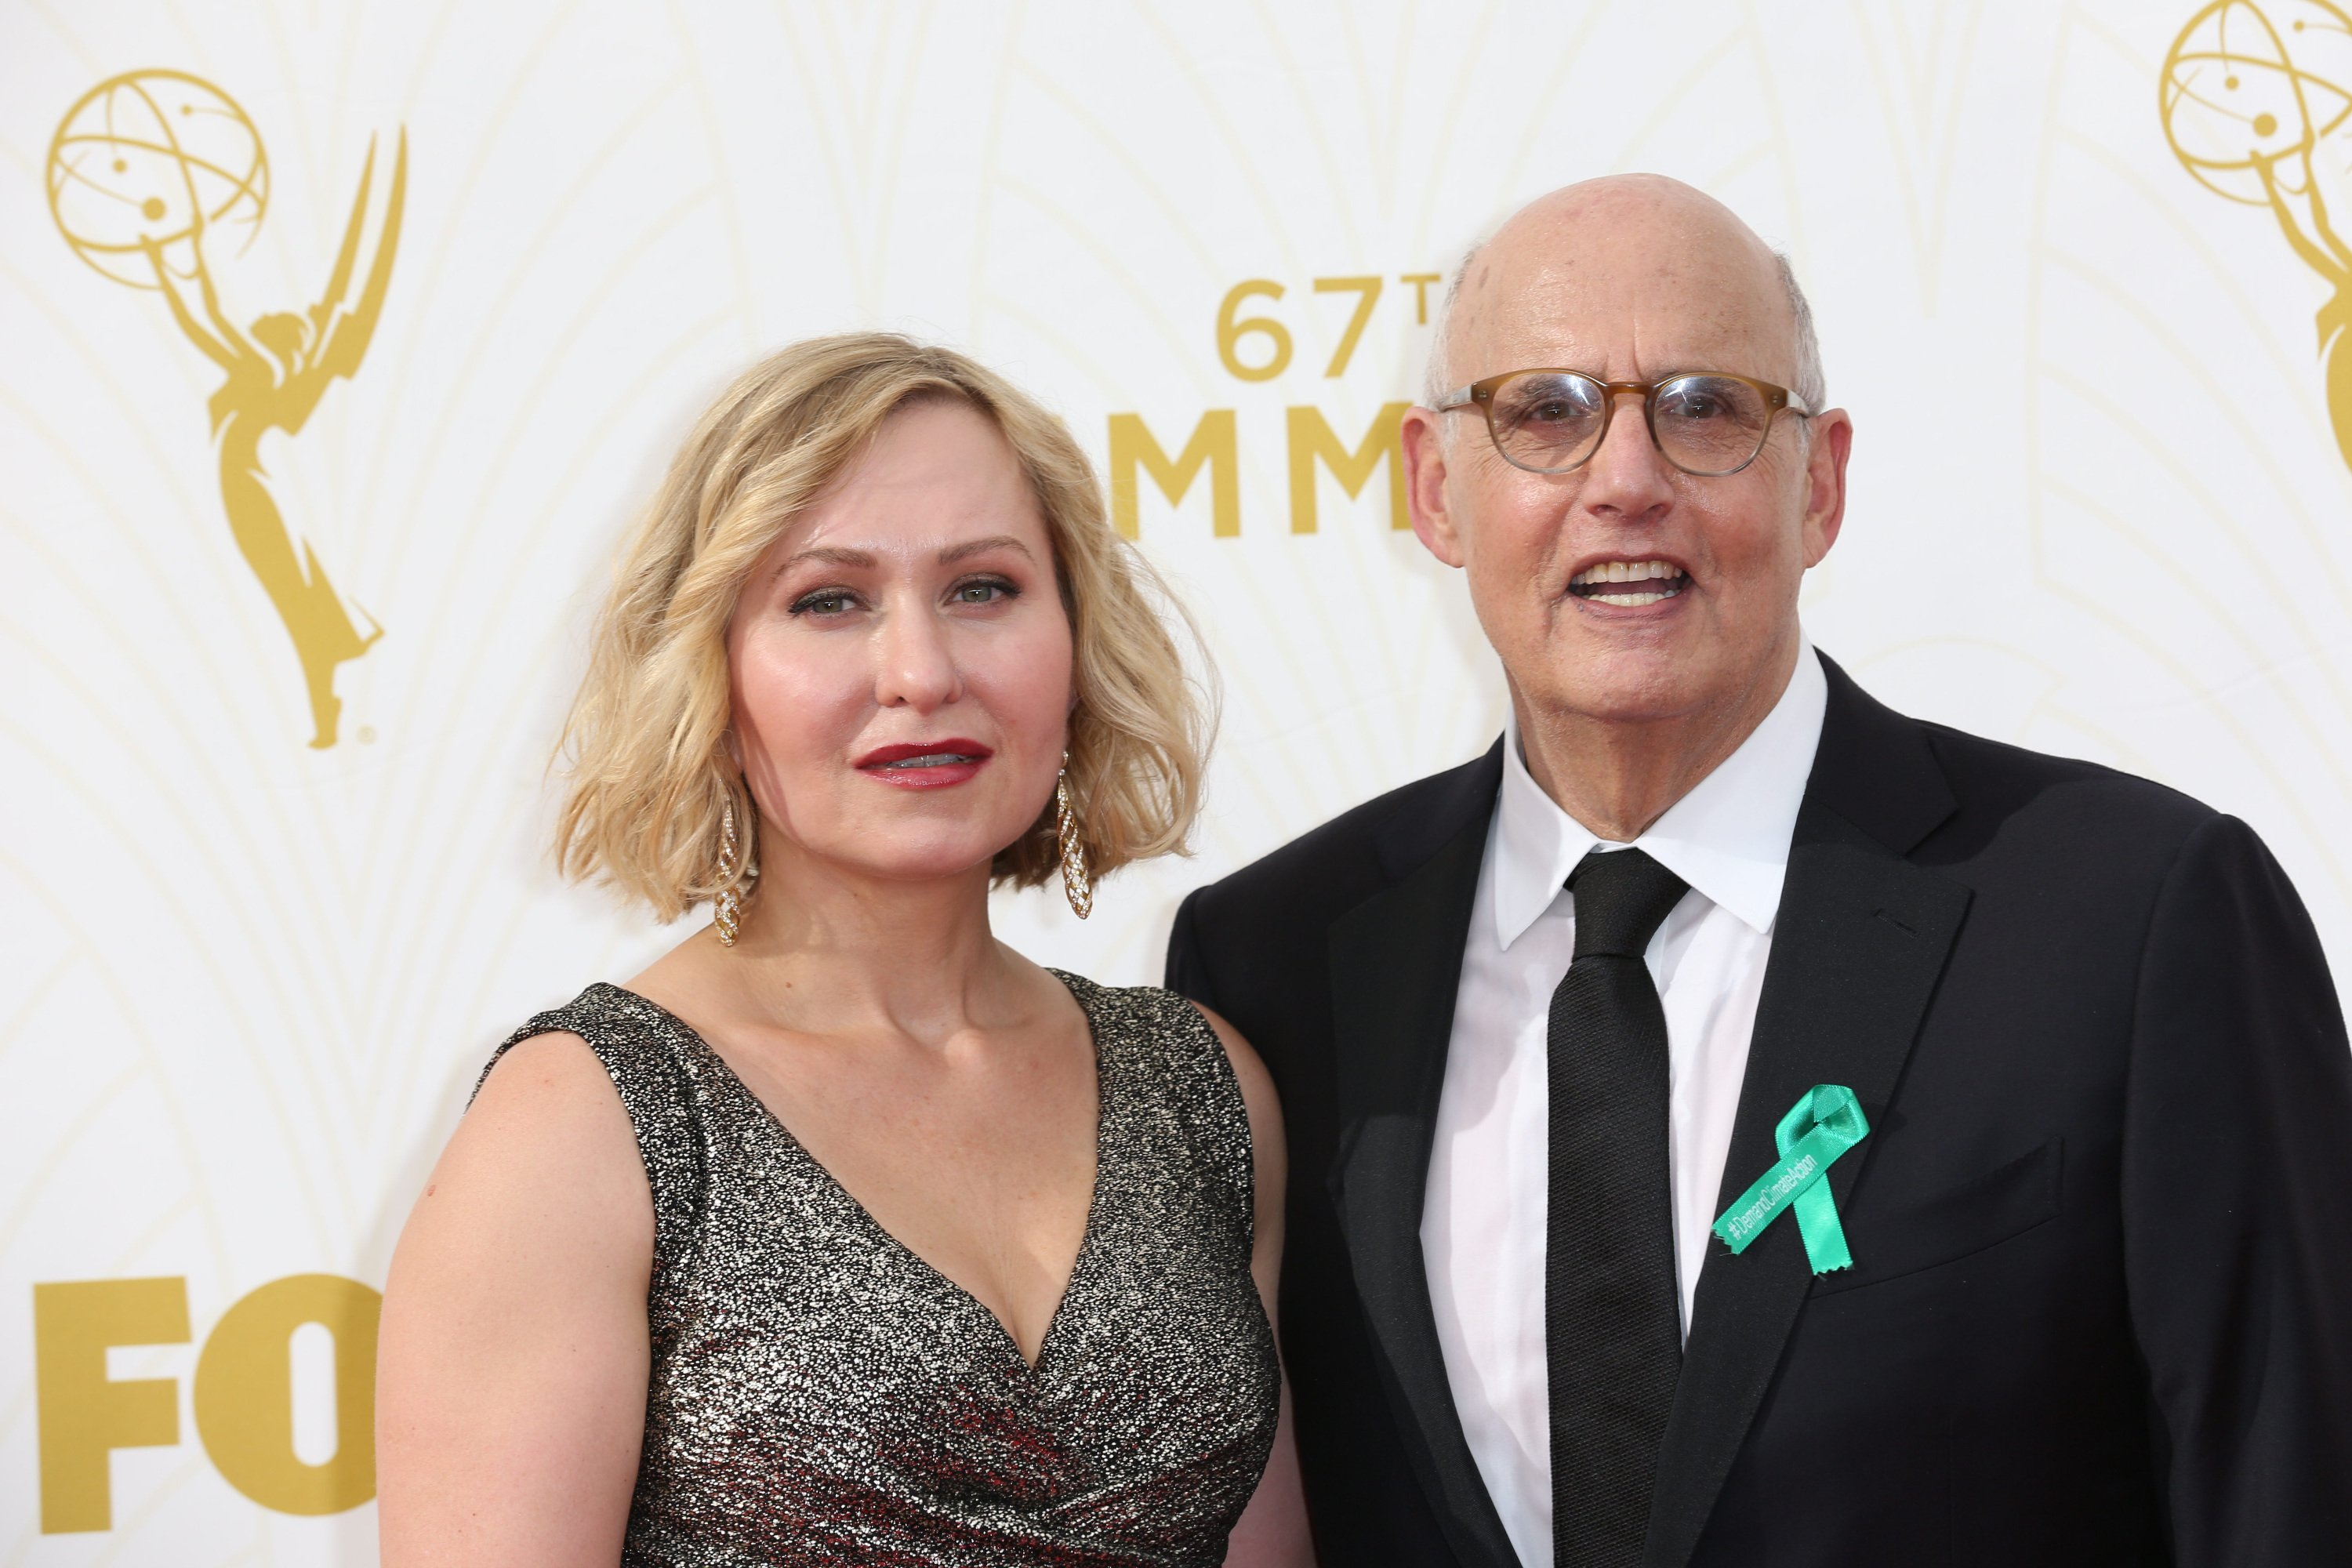 Celebrities arrive at 67th Emmys Red Carpet at Microsoft Theater.  Featuring: Kasia Ostlun, Jeffrey Tambor Where: Los Angeles, California, United States When: 20 Sep 2015 Credit: Brian To/WENN.com